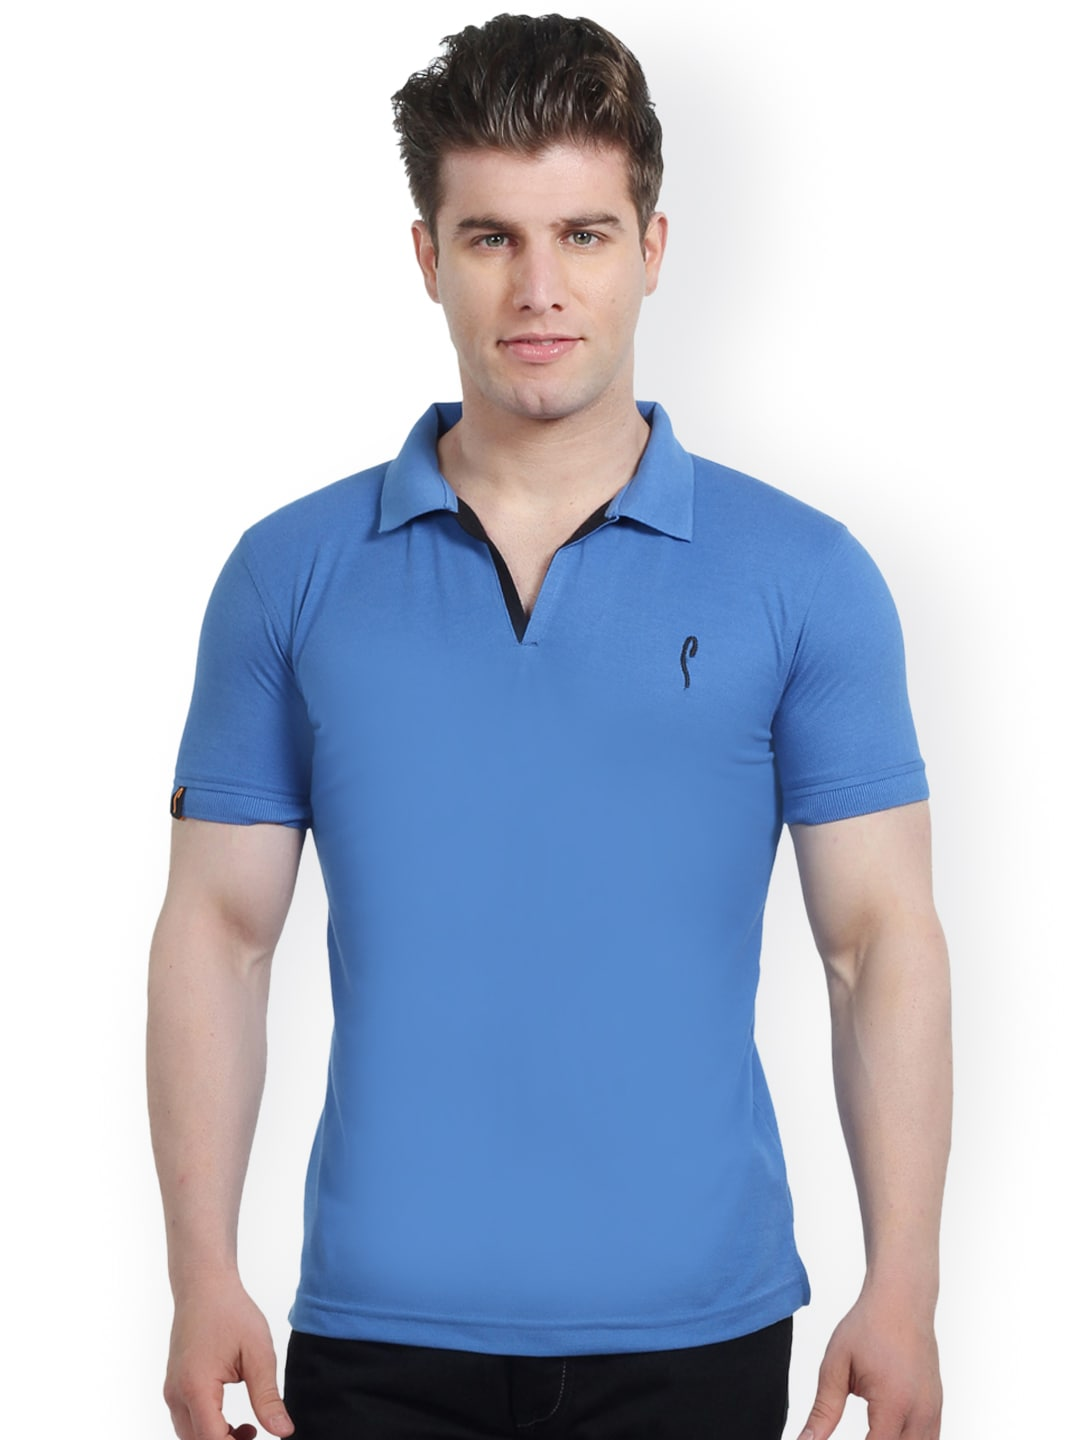 b4ef8c34392 Stride 4001-airforceblue Blue Slim Fit T Shirt - Best Price in India ...